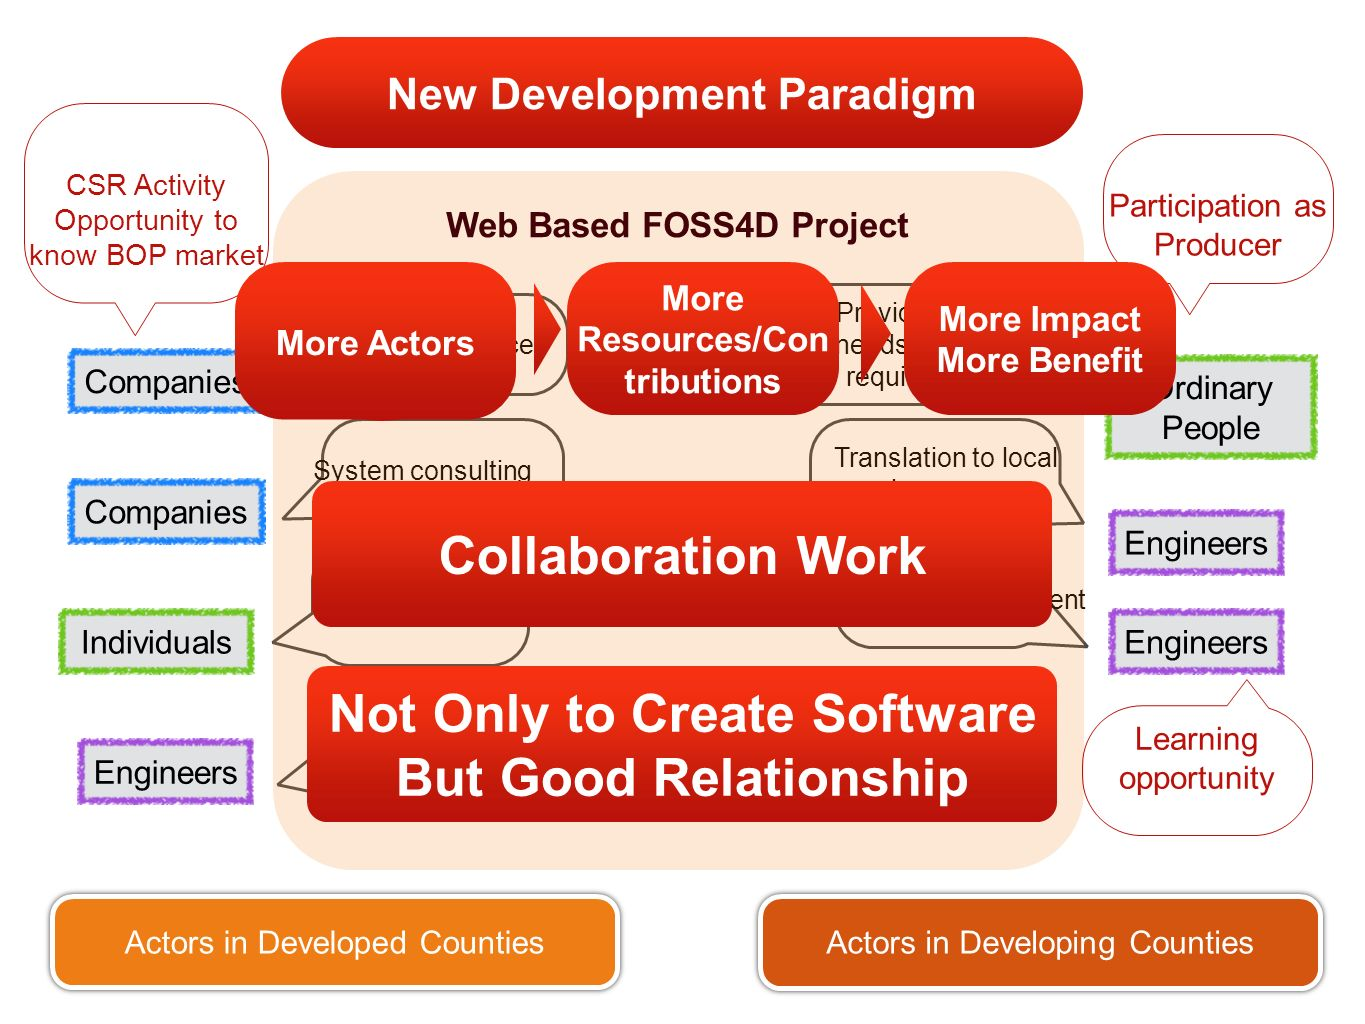 New Development Paradigm CompaniesIndividualsOrdinary People Engineers System consulting P2P funding Free cloud service Programming Providing real needs/system requirement EngineersCompanies Actors in Developed Counties Actors in Developing Counties System development Engineers Translation to local language Web Based FOSS4D Project Participation as Producer Learning opportunity CSR Activity Opportunity to know BOP market More Impact More Benefit More Actors More Resources/Con tributions Collaboration Work Not Only to Create Software But Good Relationship